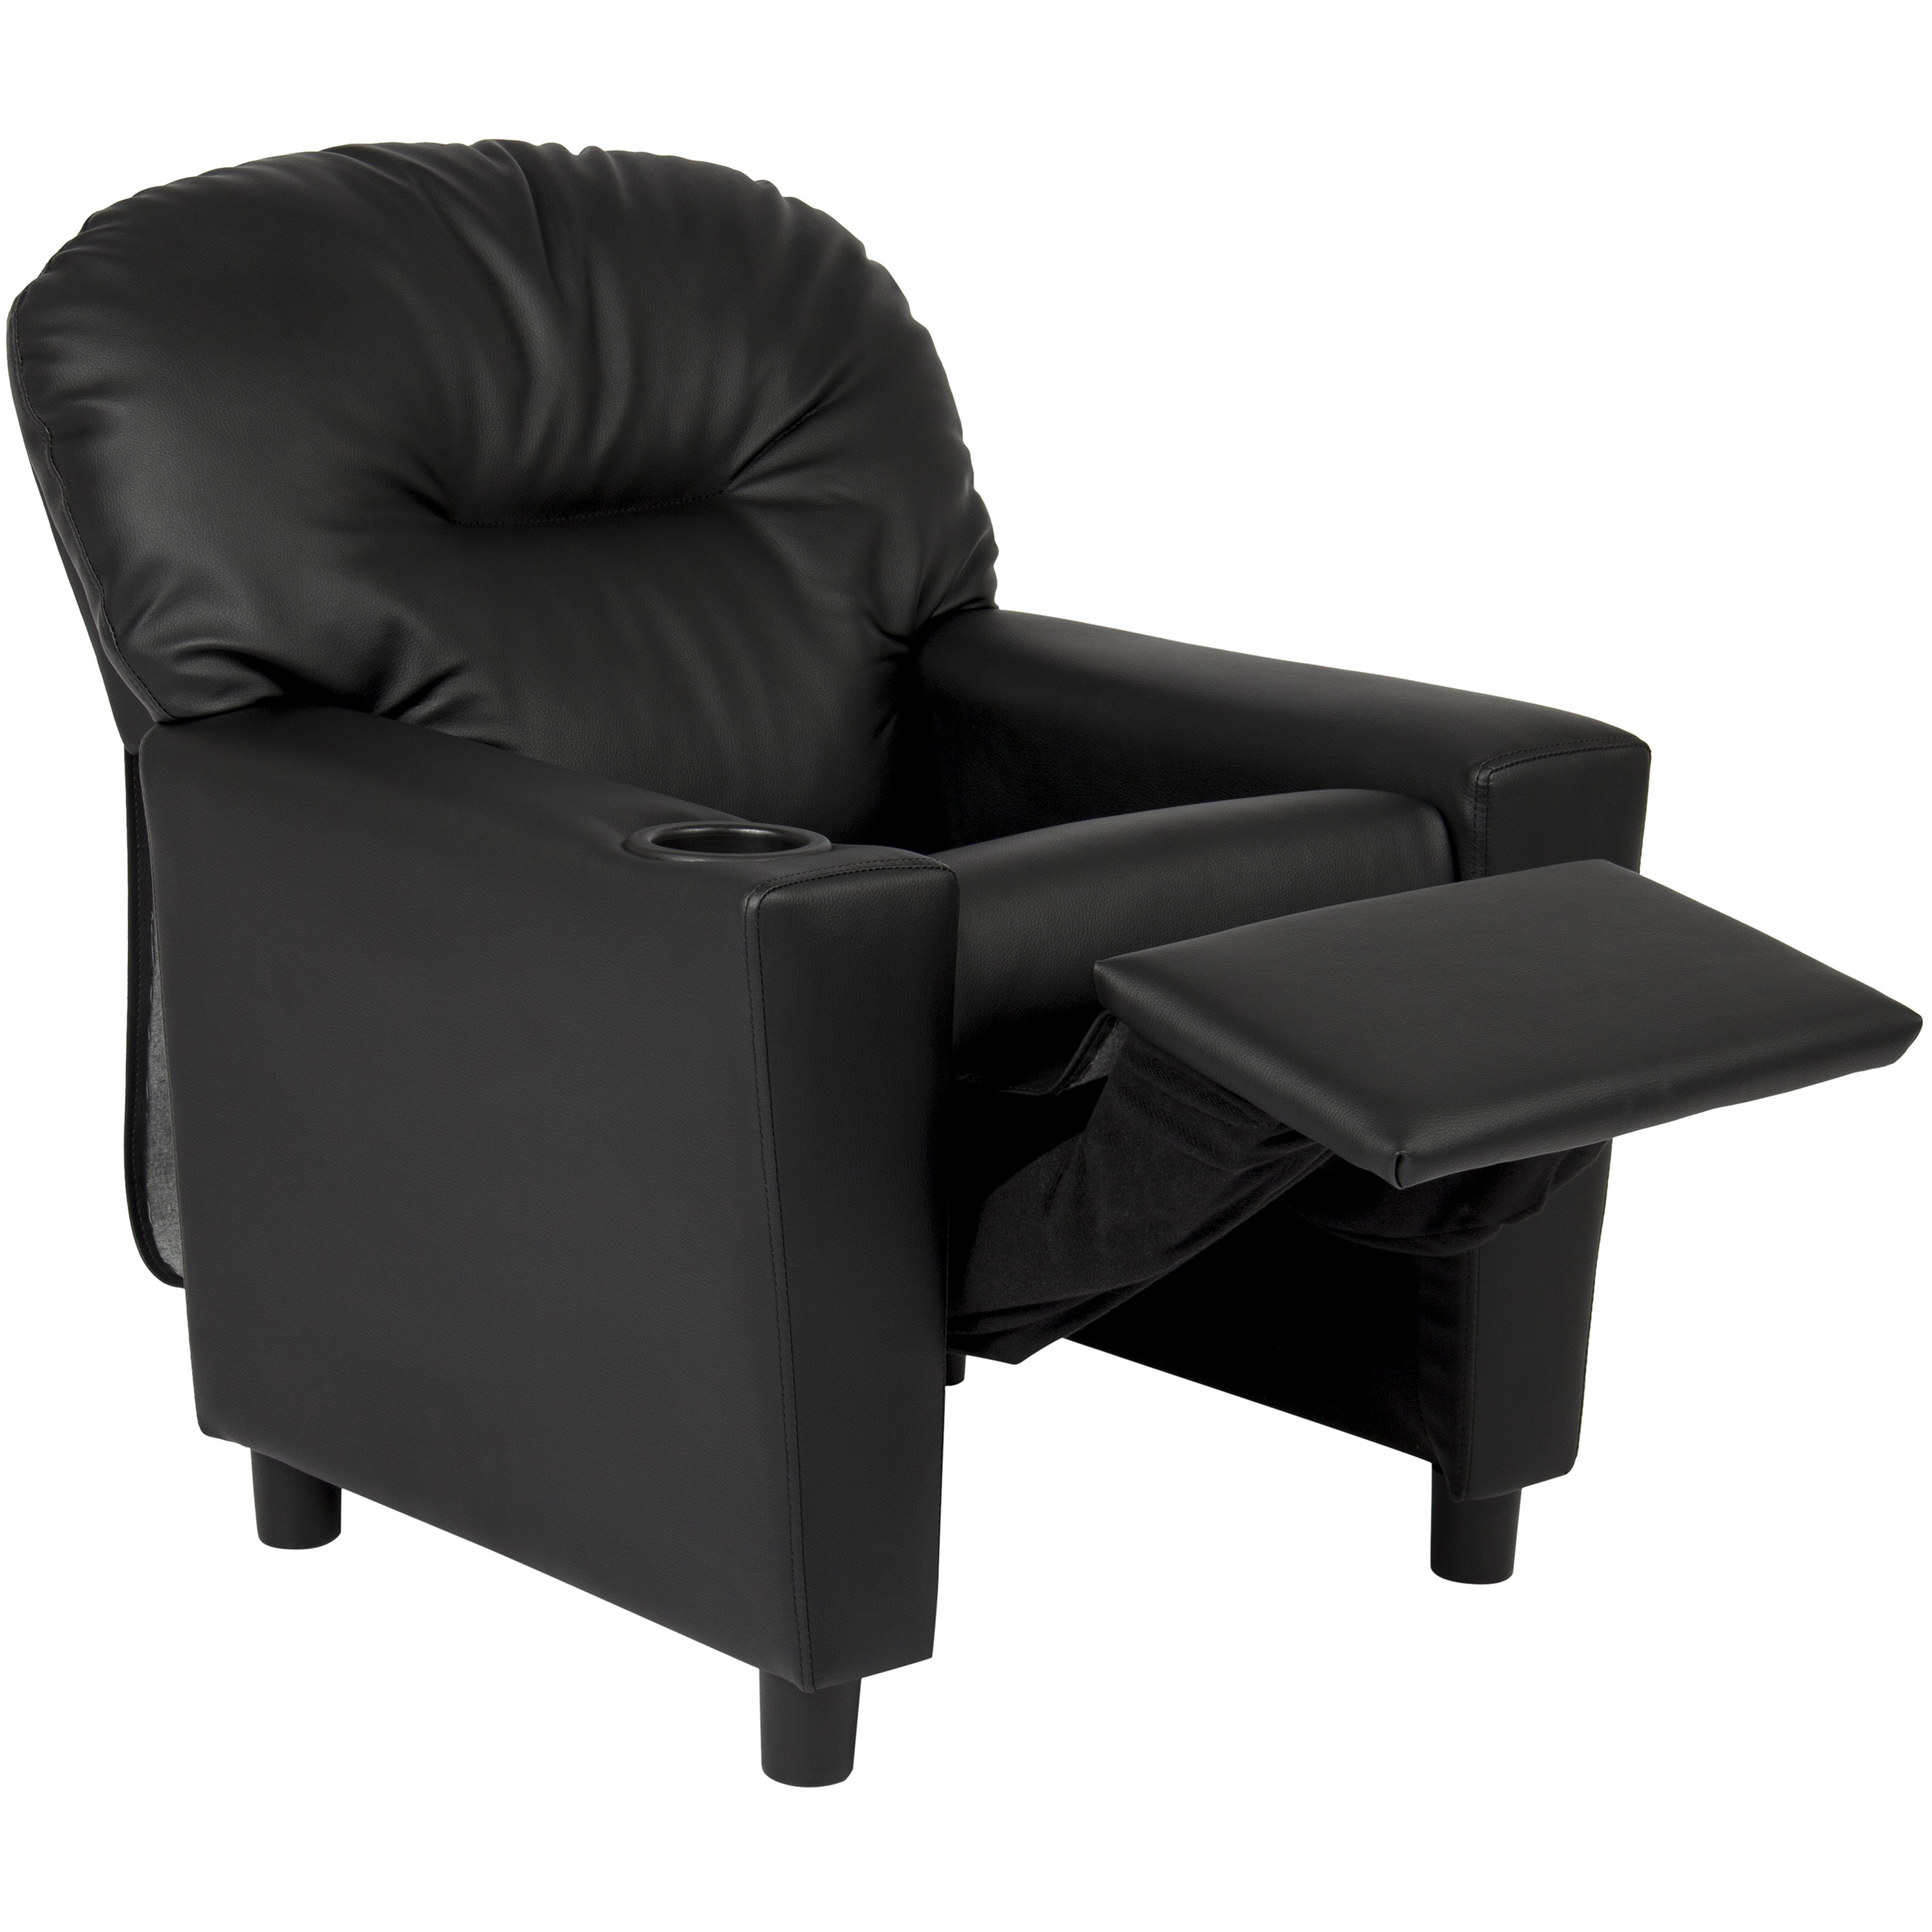 Attirant Best Choice Products Black Leather Kids Recliner Chair With Cup Holder    Walmart.com